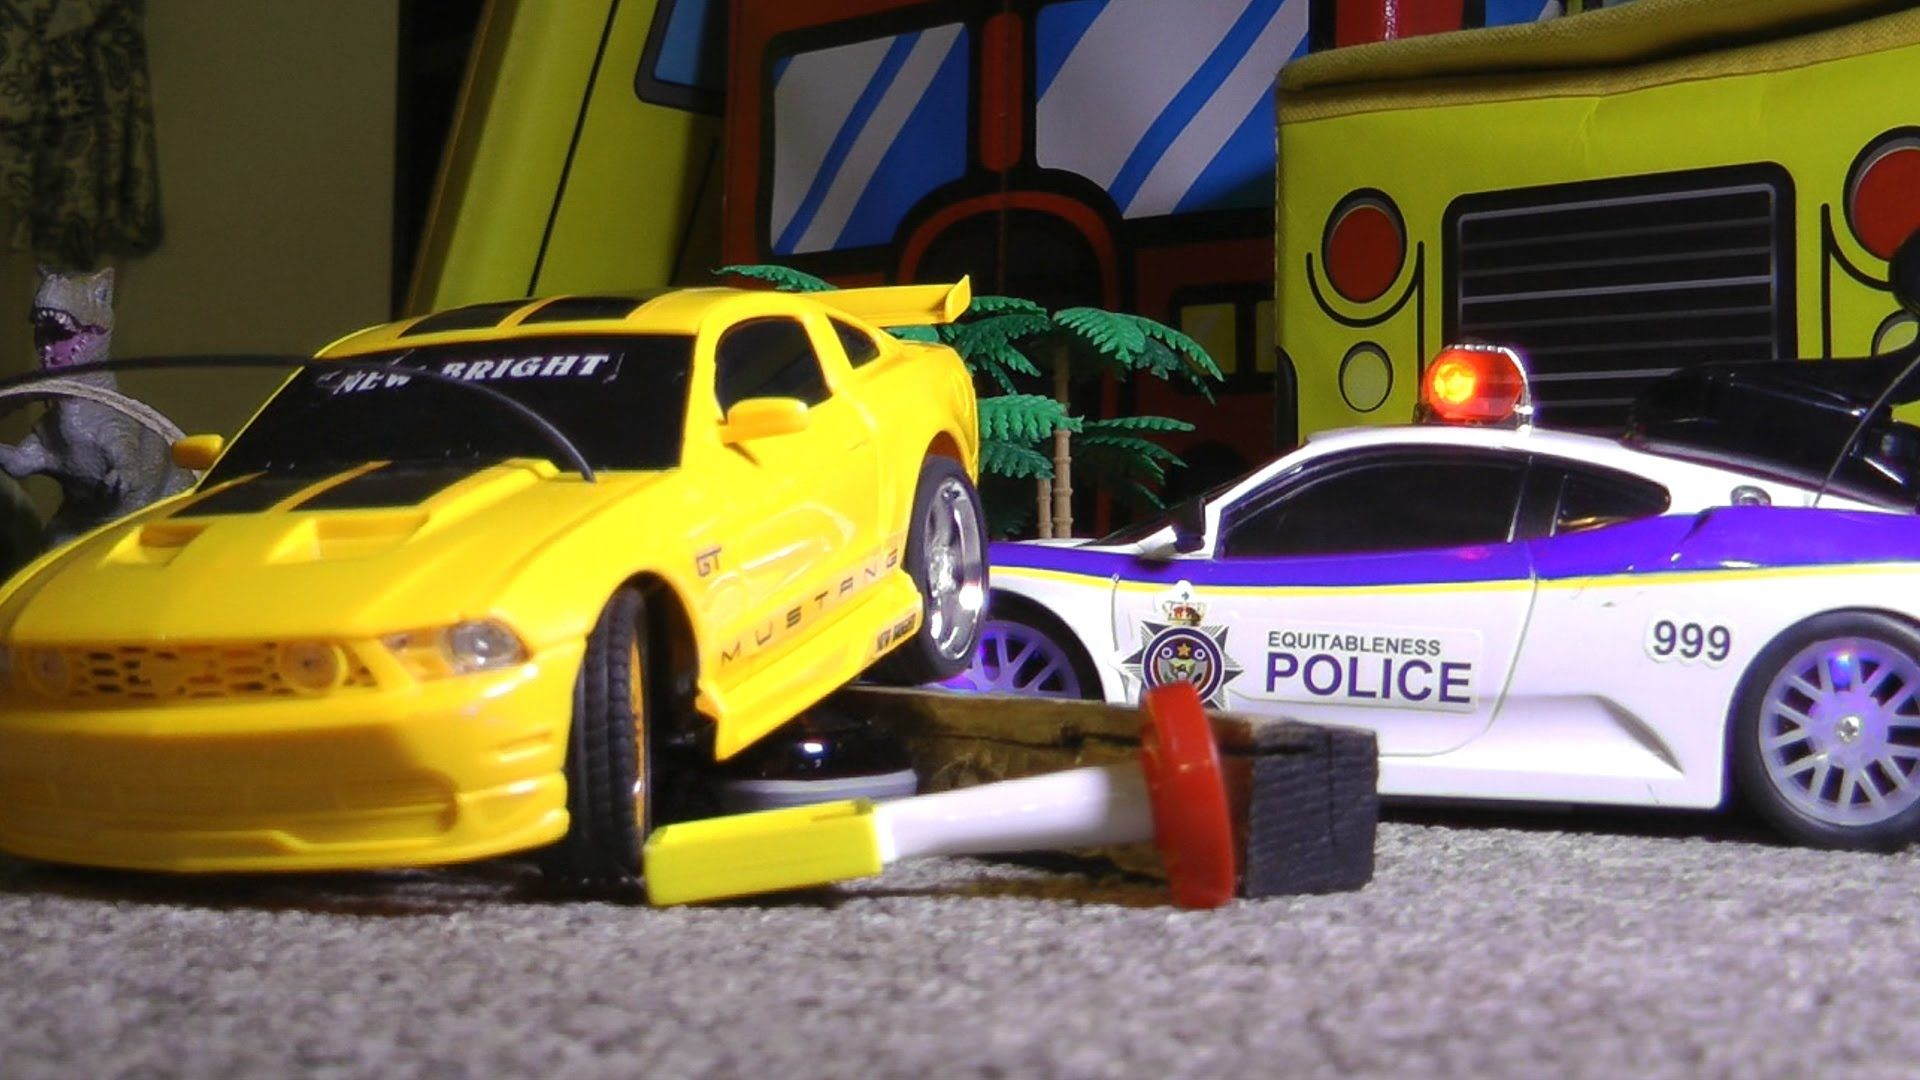 RC Police Chase VS FORD MUSTANG Toy Cars CRASH ACTION!!! | hotwheels ...